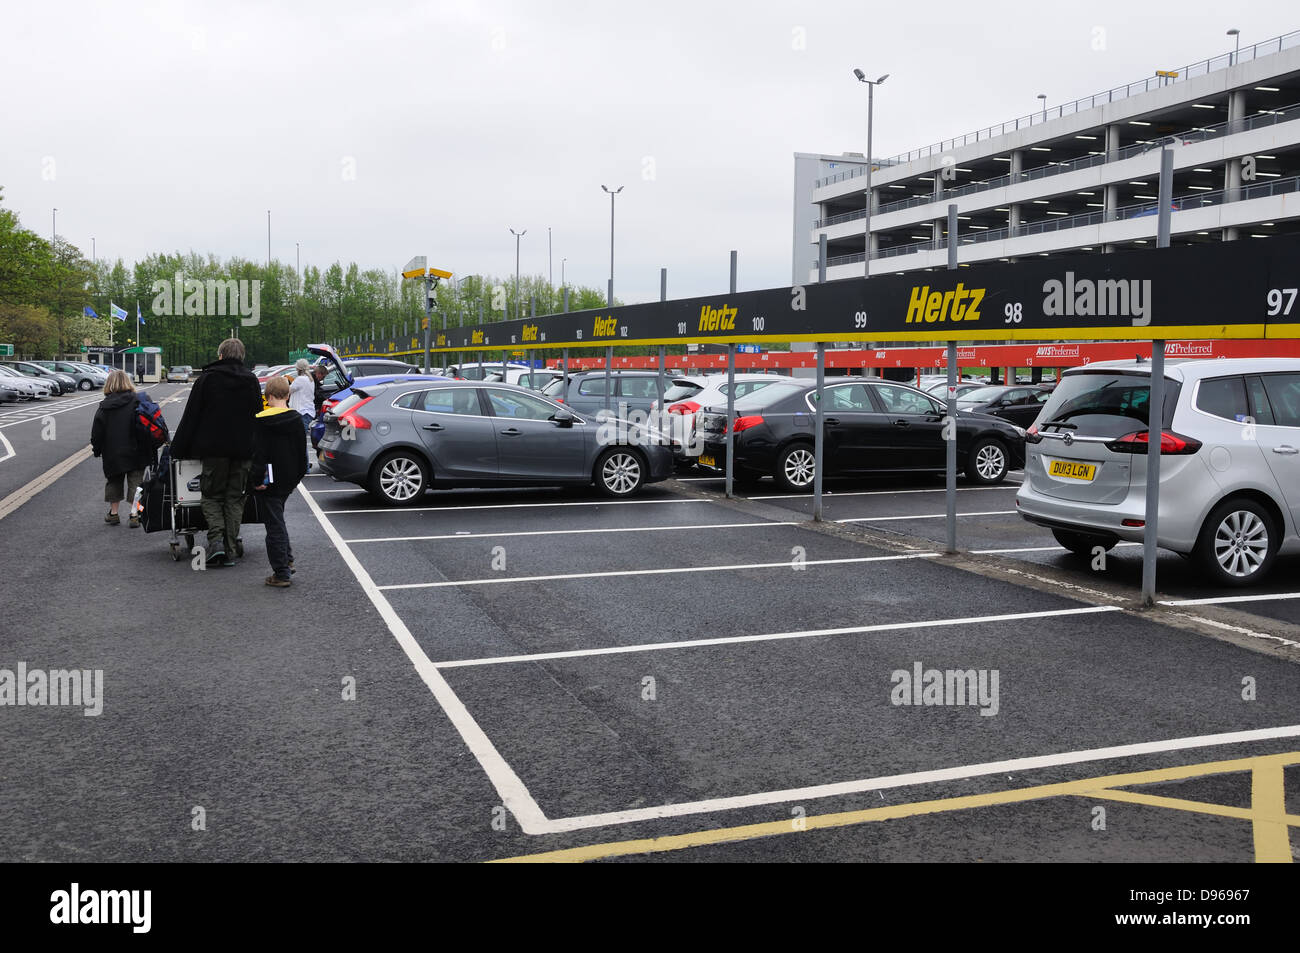 Sixt Minibus Hire Branches Across the UK